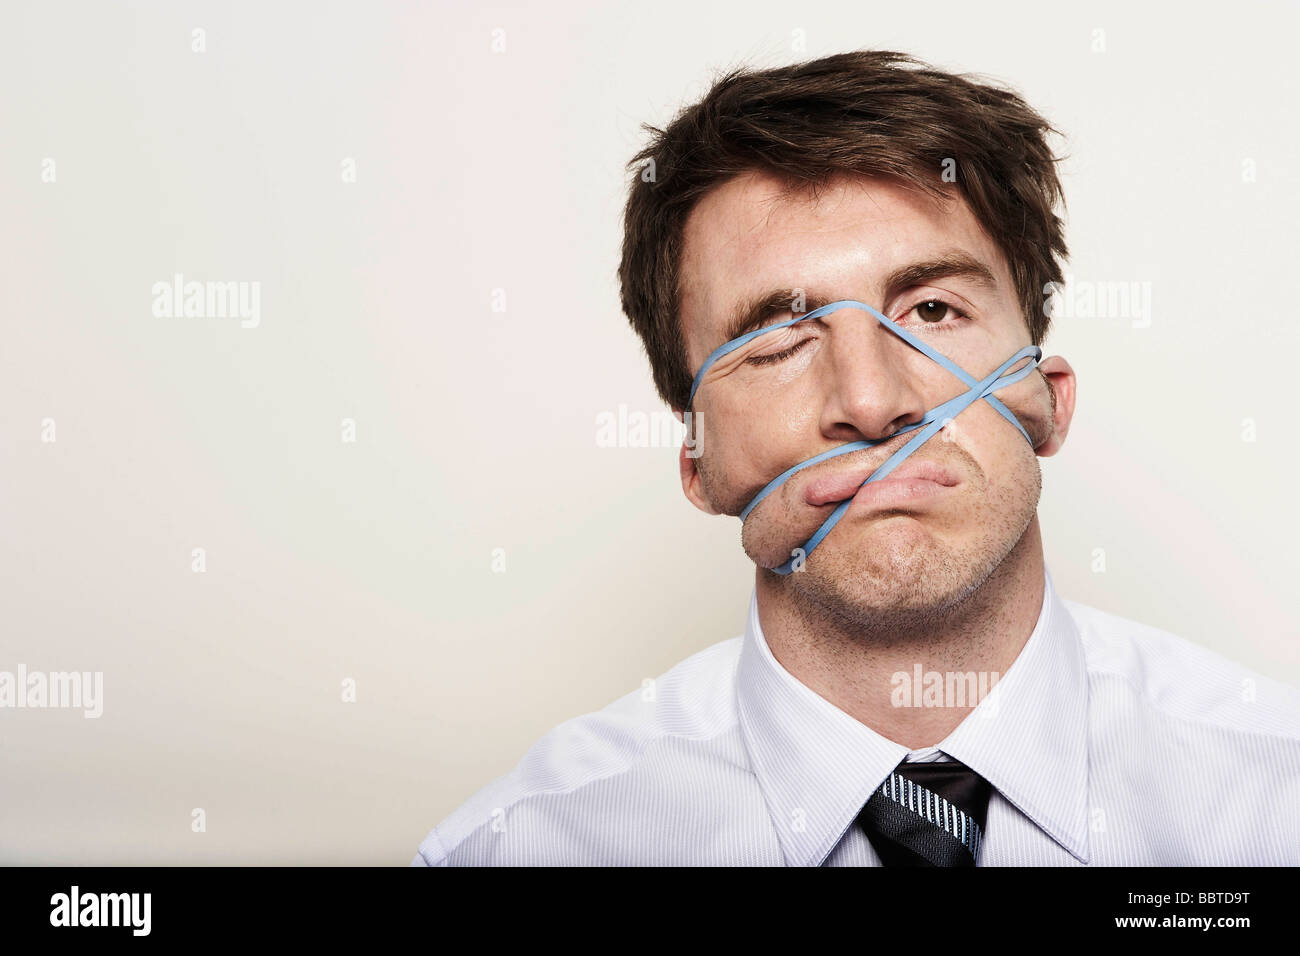 Business man with rubber bands on face - Stock Image